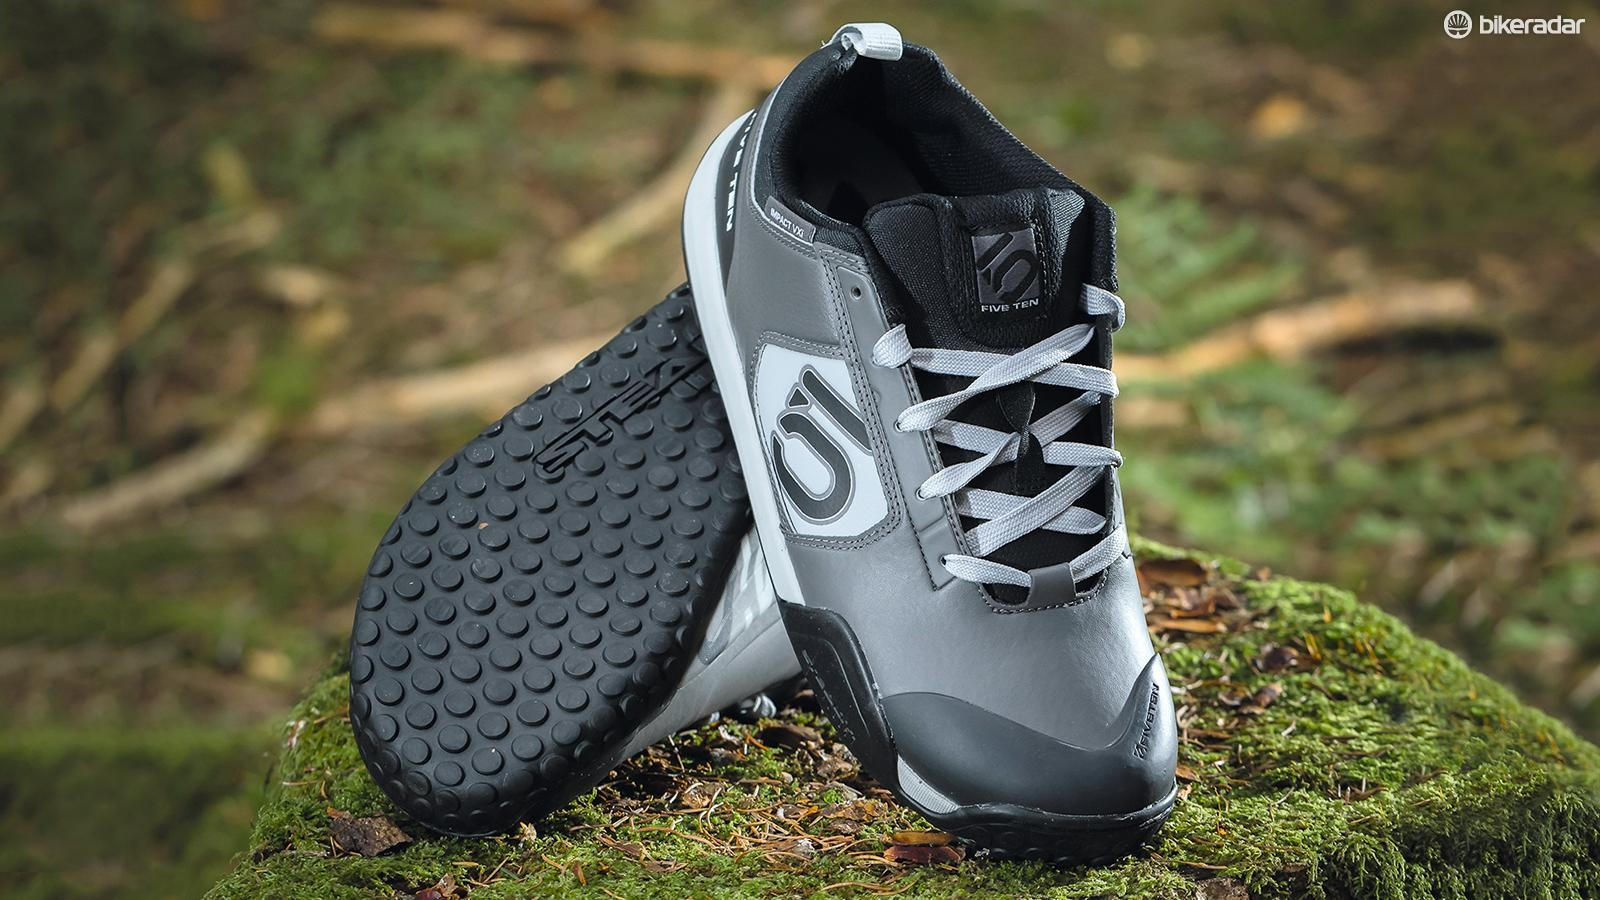 Five Ten Impact VXi shoes continue to lead the flat-pedal herd